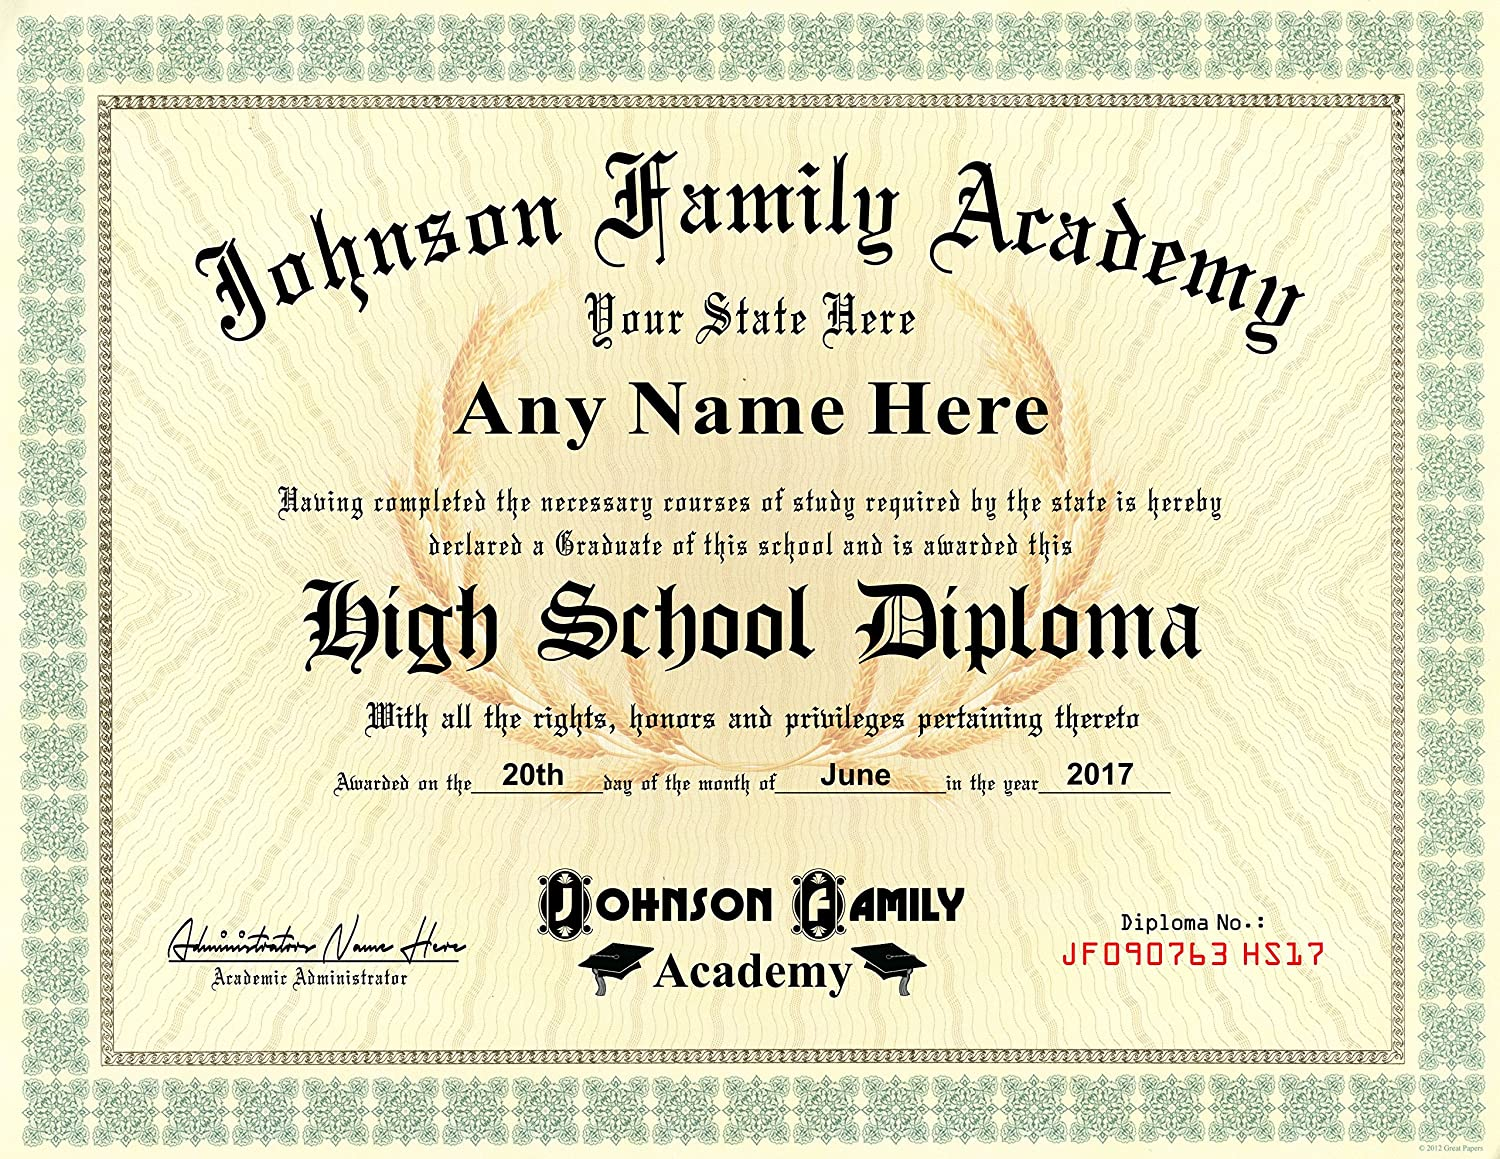 Home School Student High School Diploma Personalized With Your Info Premium Qaulity Comes With Certificate Folder